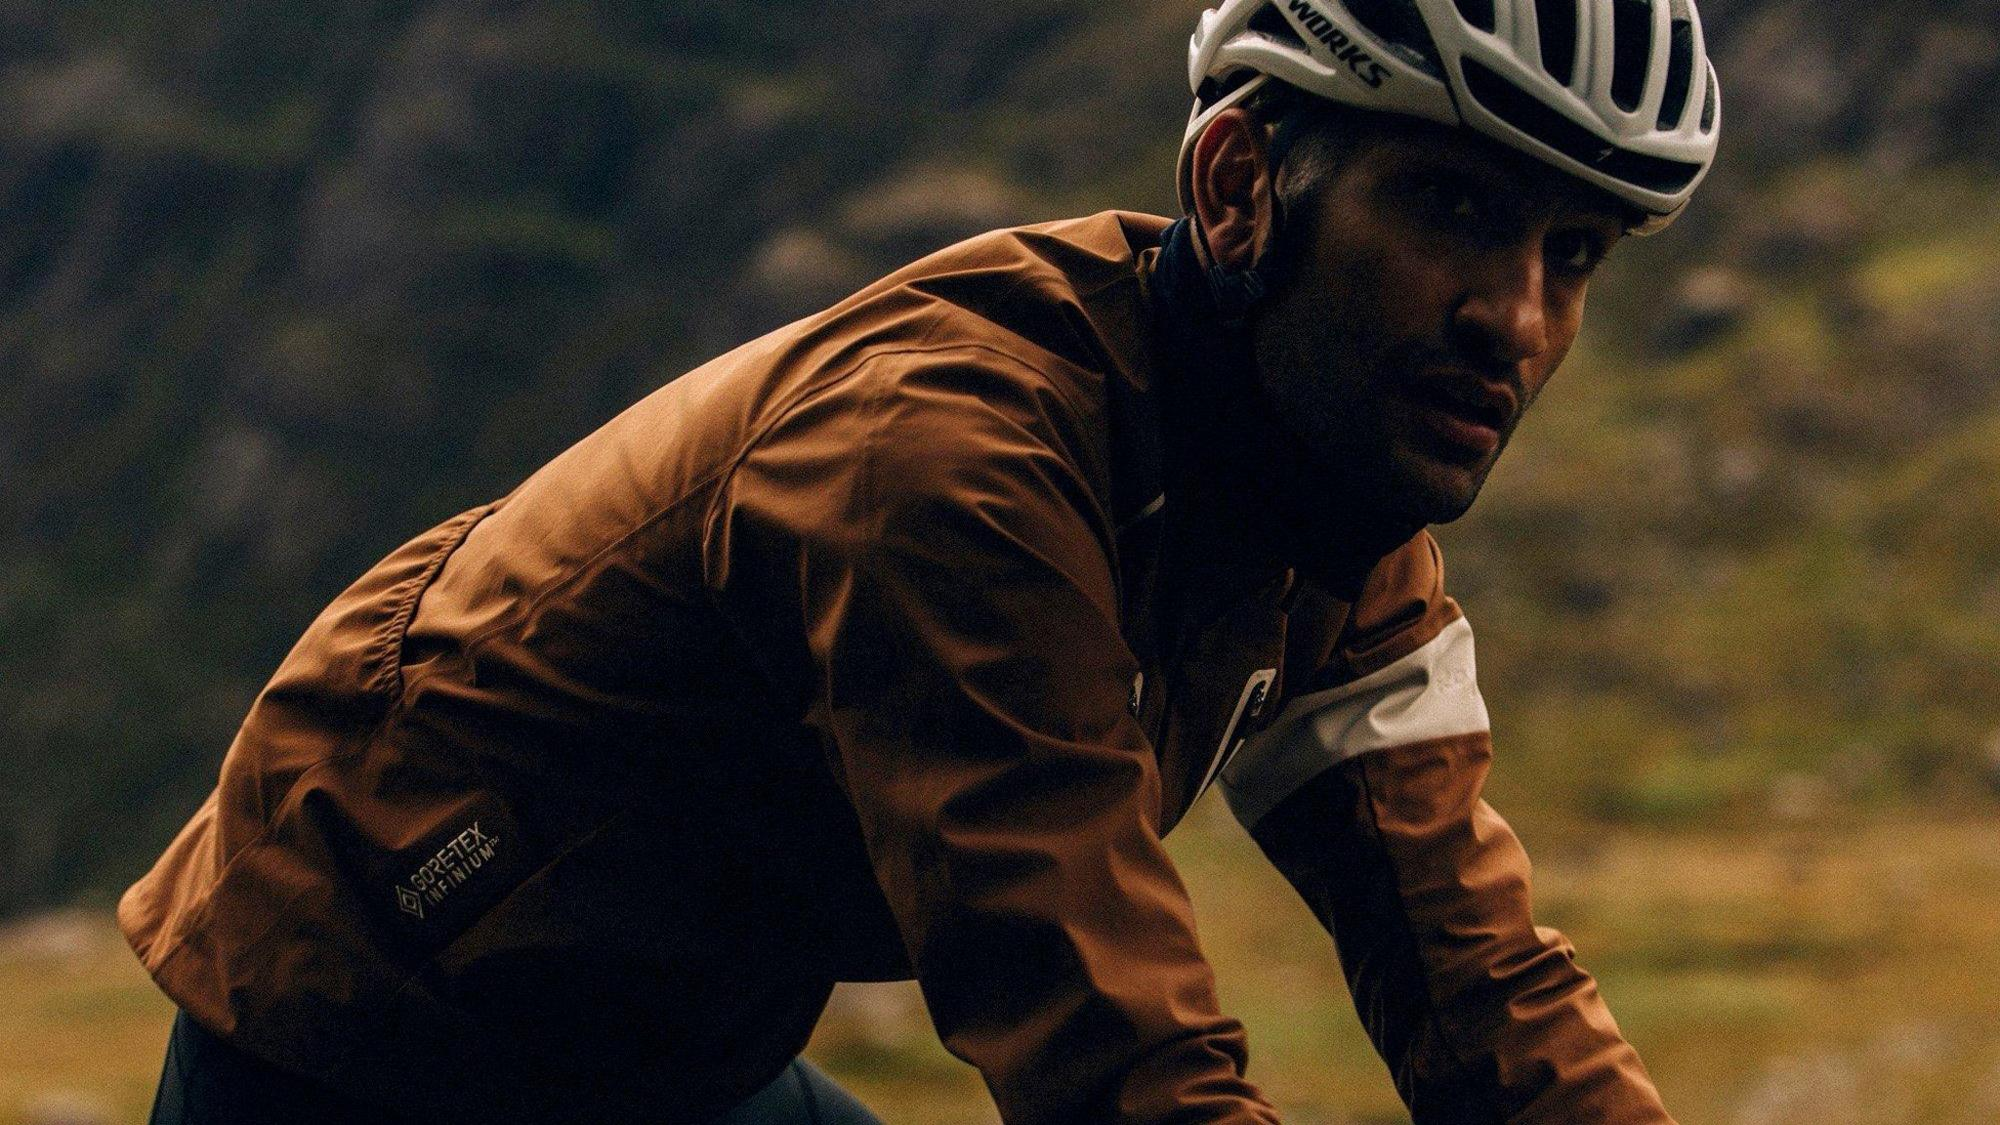 Cycling Jackets for Winter Riding